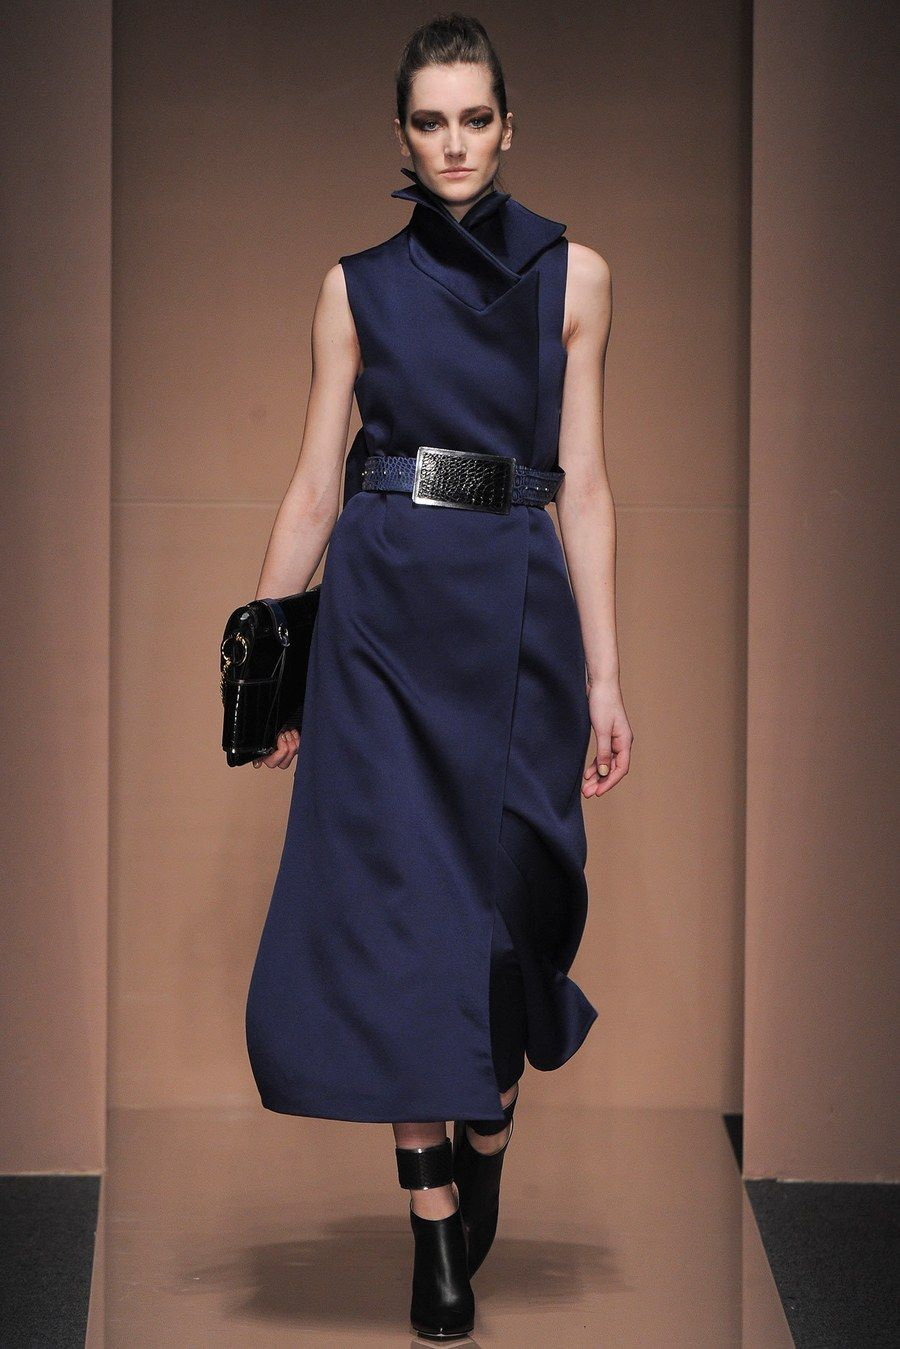 Ferre gianfranco fall runway review recommendations dress for winter in 2019